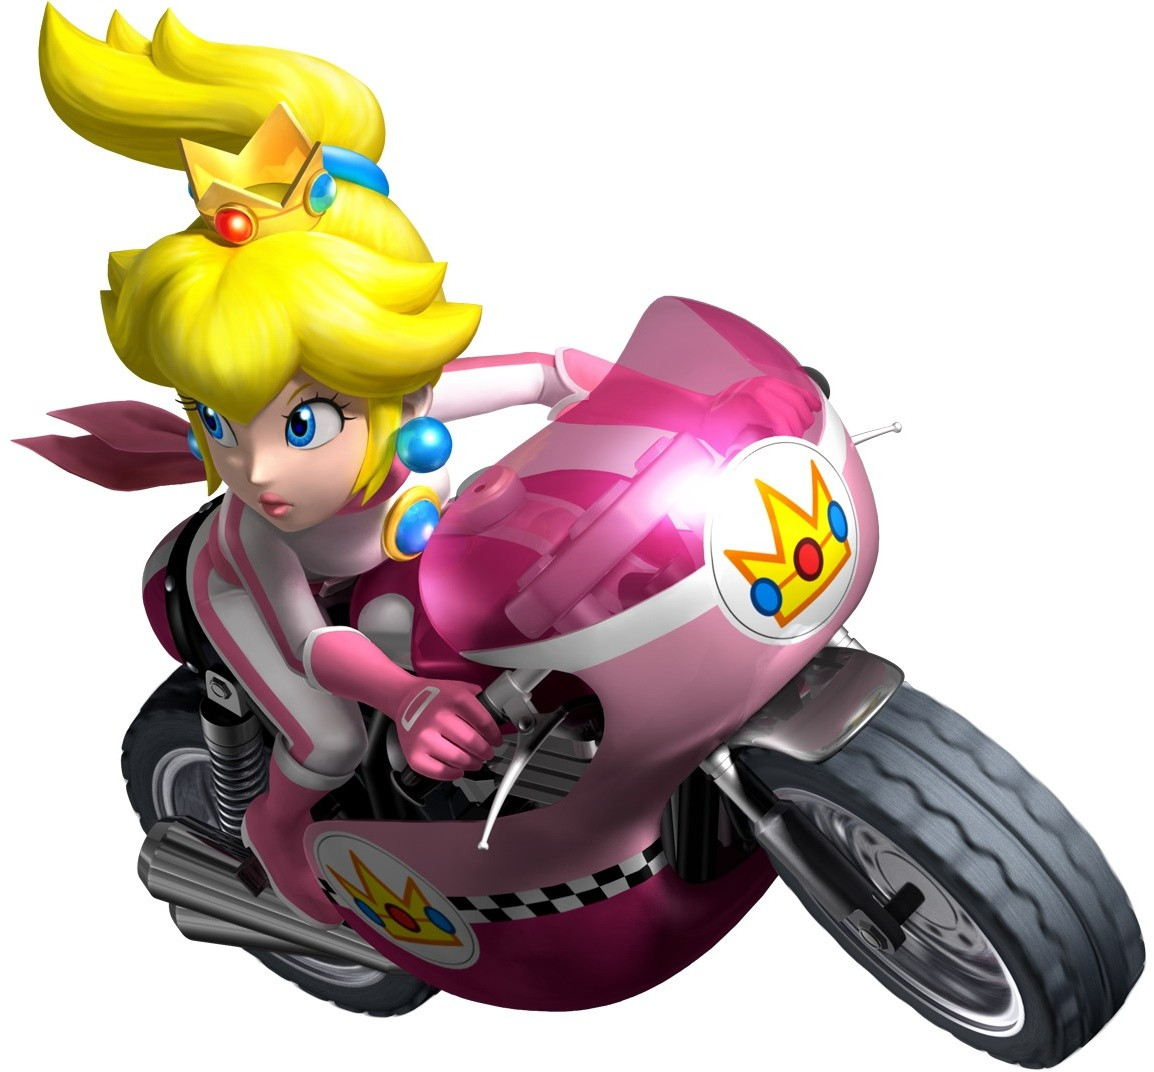 Princess Peach - The Mario Kart Racing Wiki - Mario Kart ...